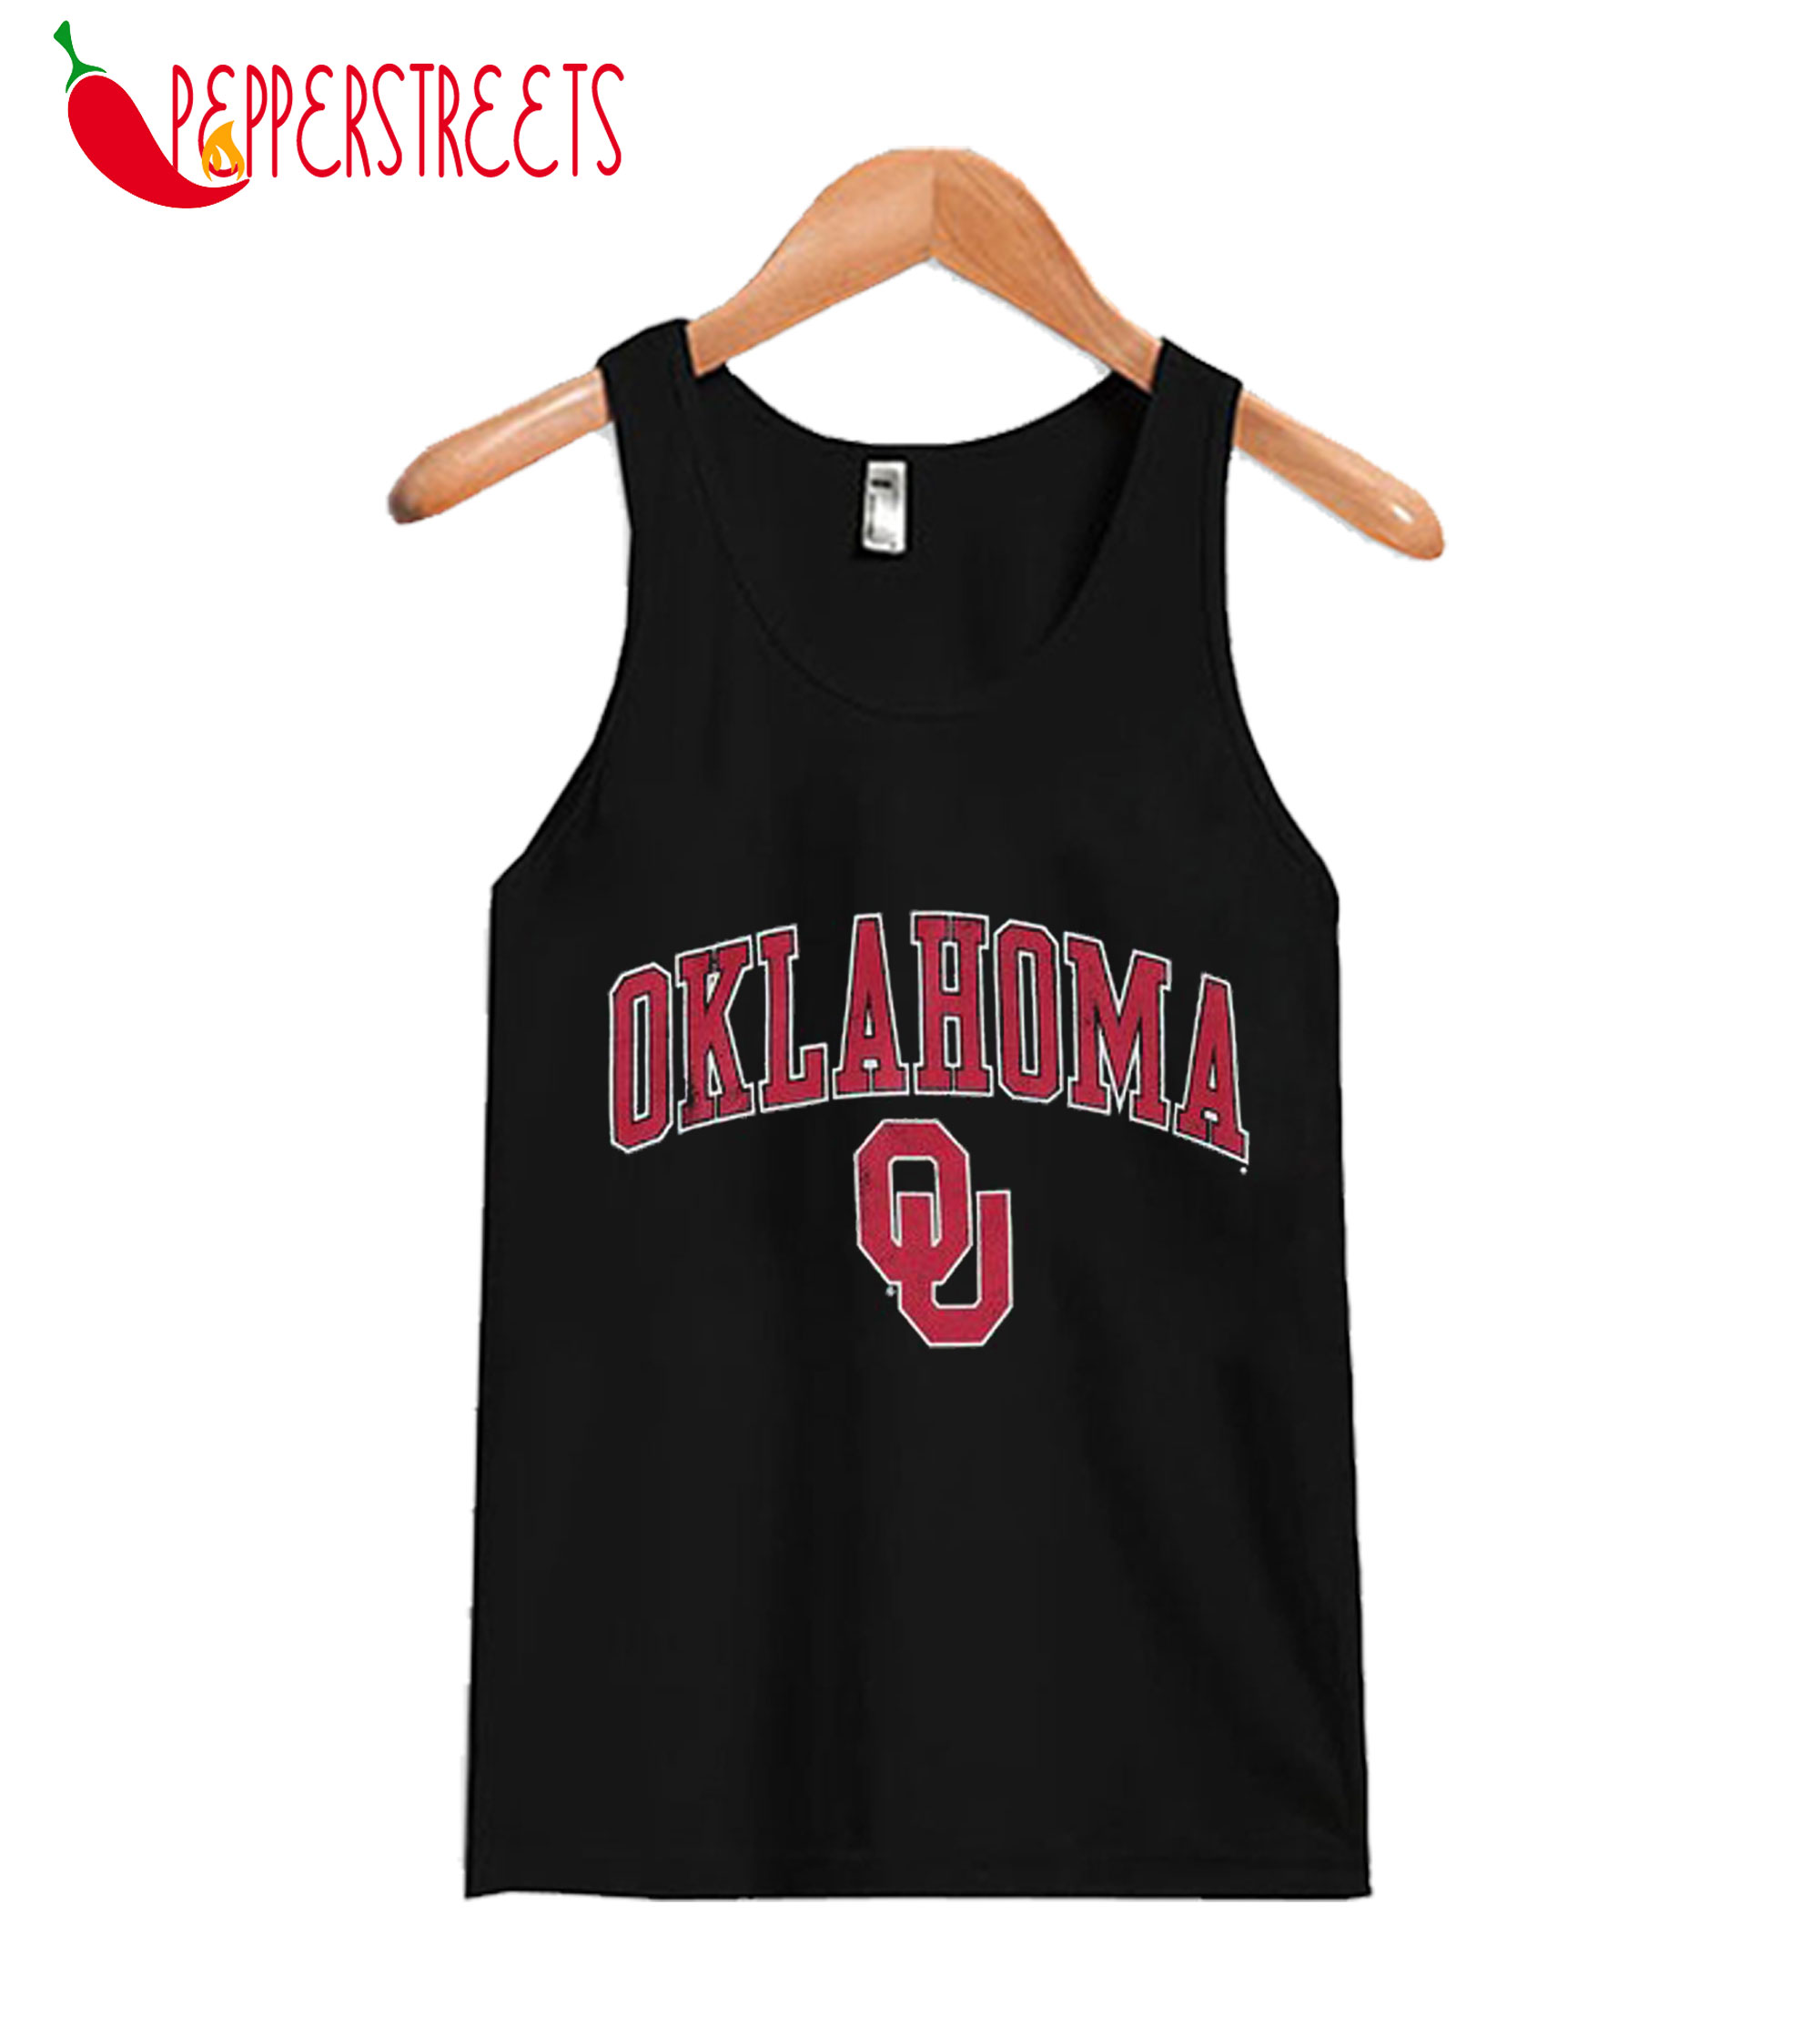 Youth Fanatics Branded Black Oklahoma Tank Top